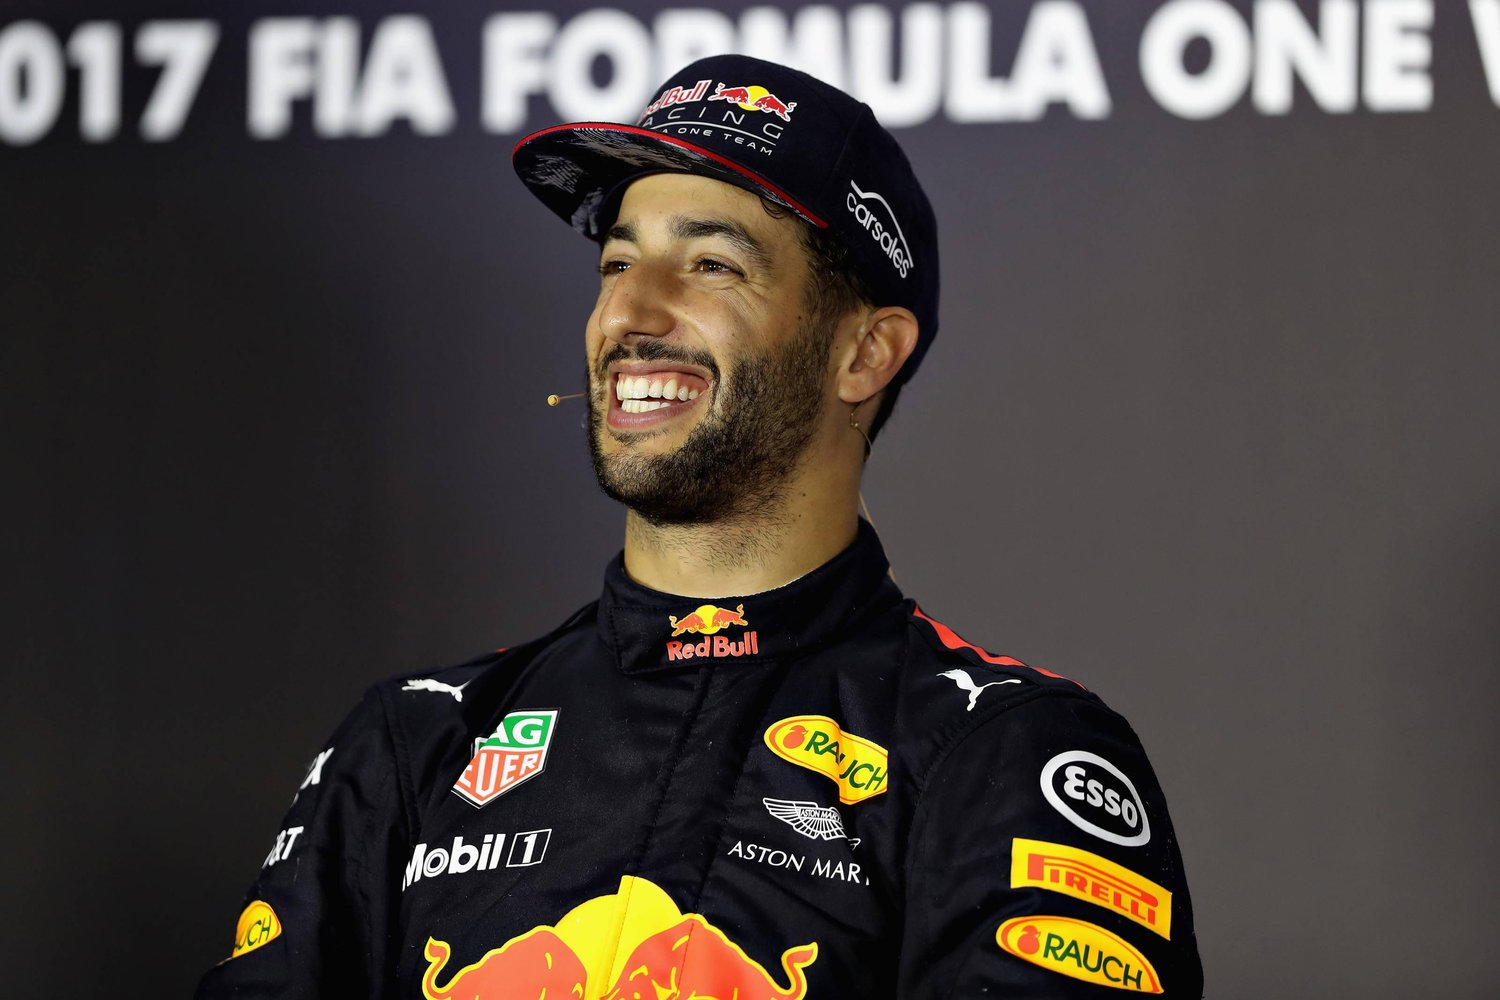 daniel-ricciardo-red-bull-racing-formula-one-2018.jpg